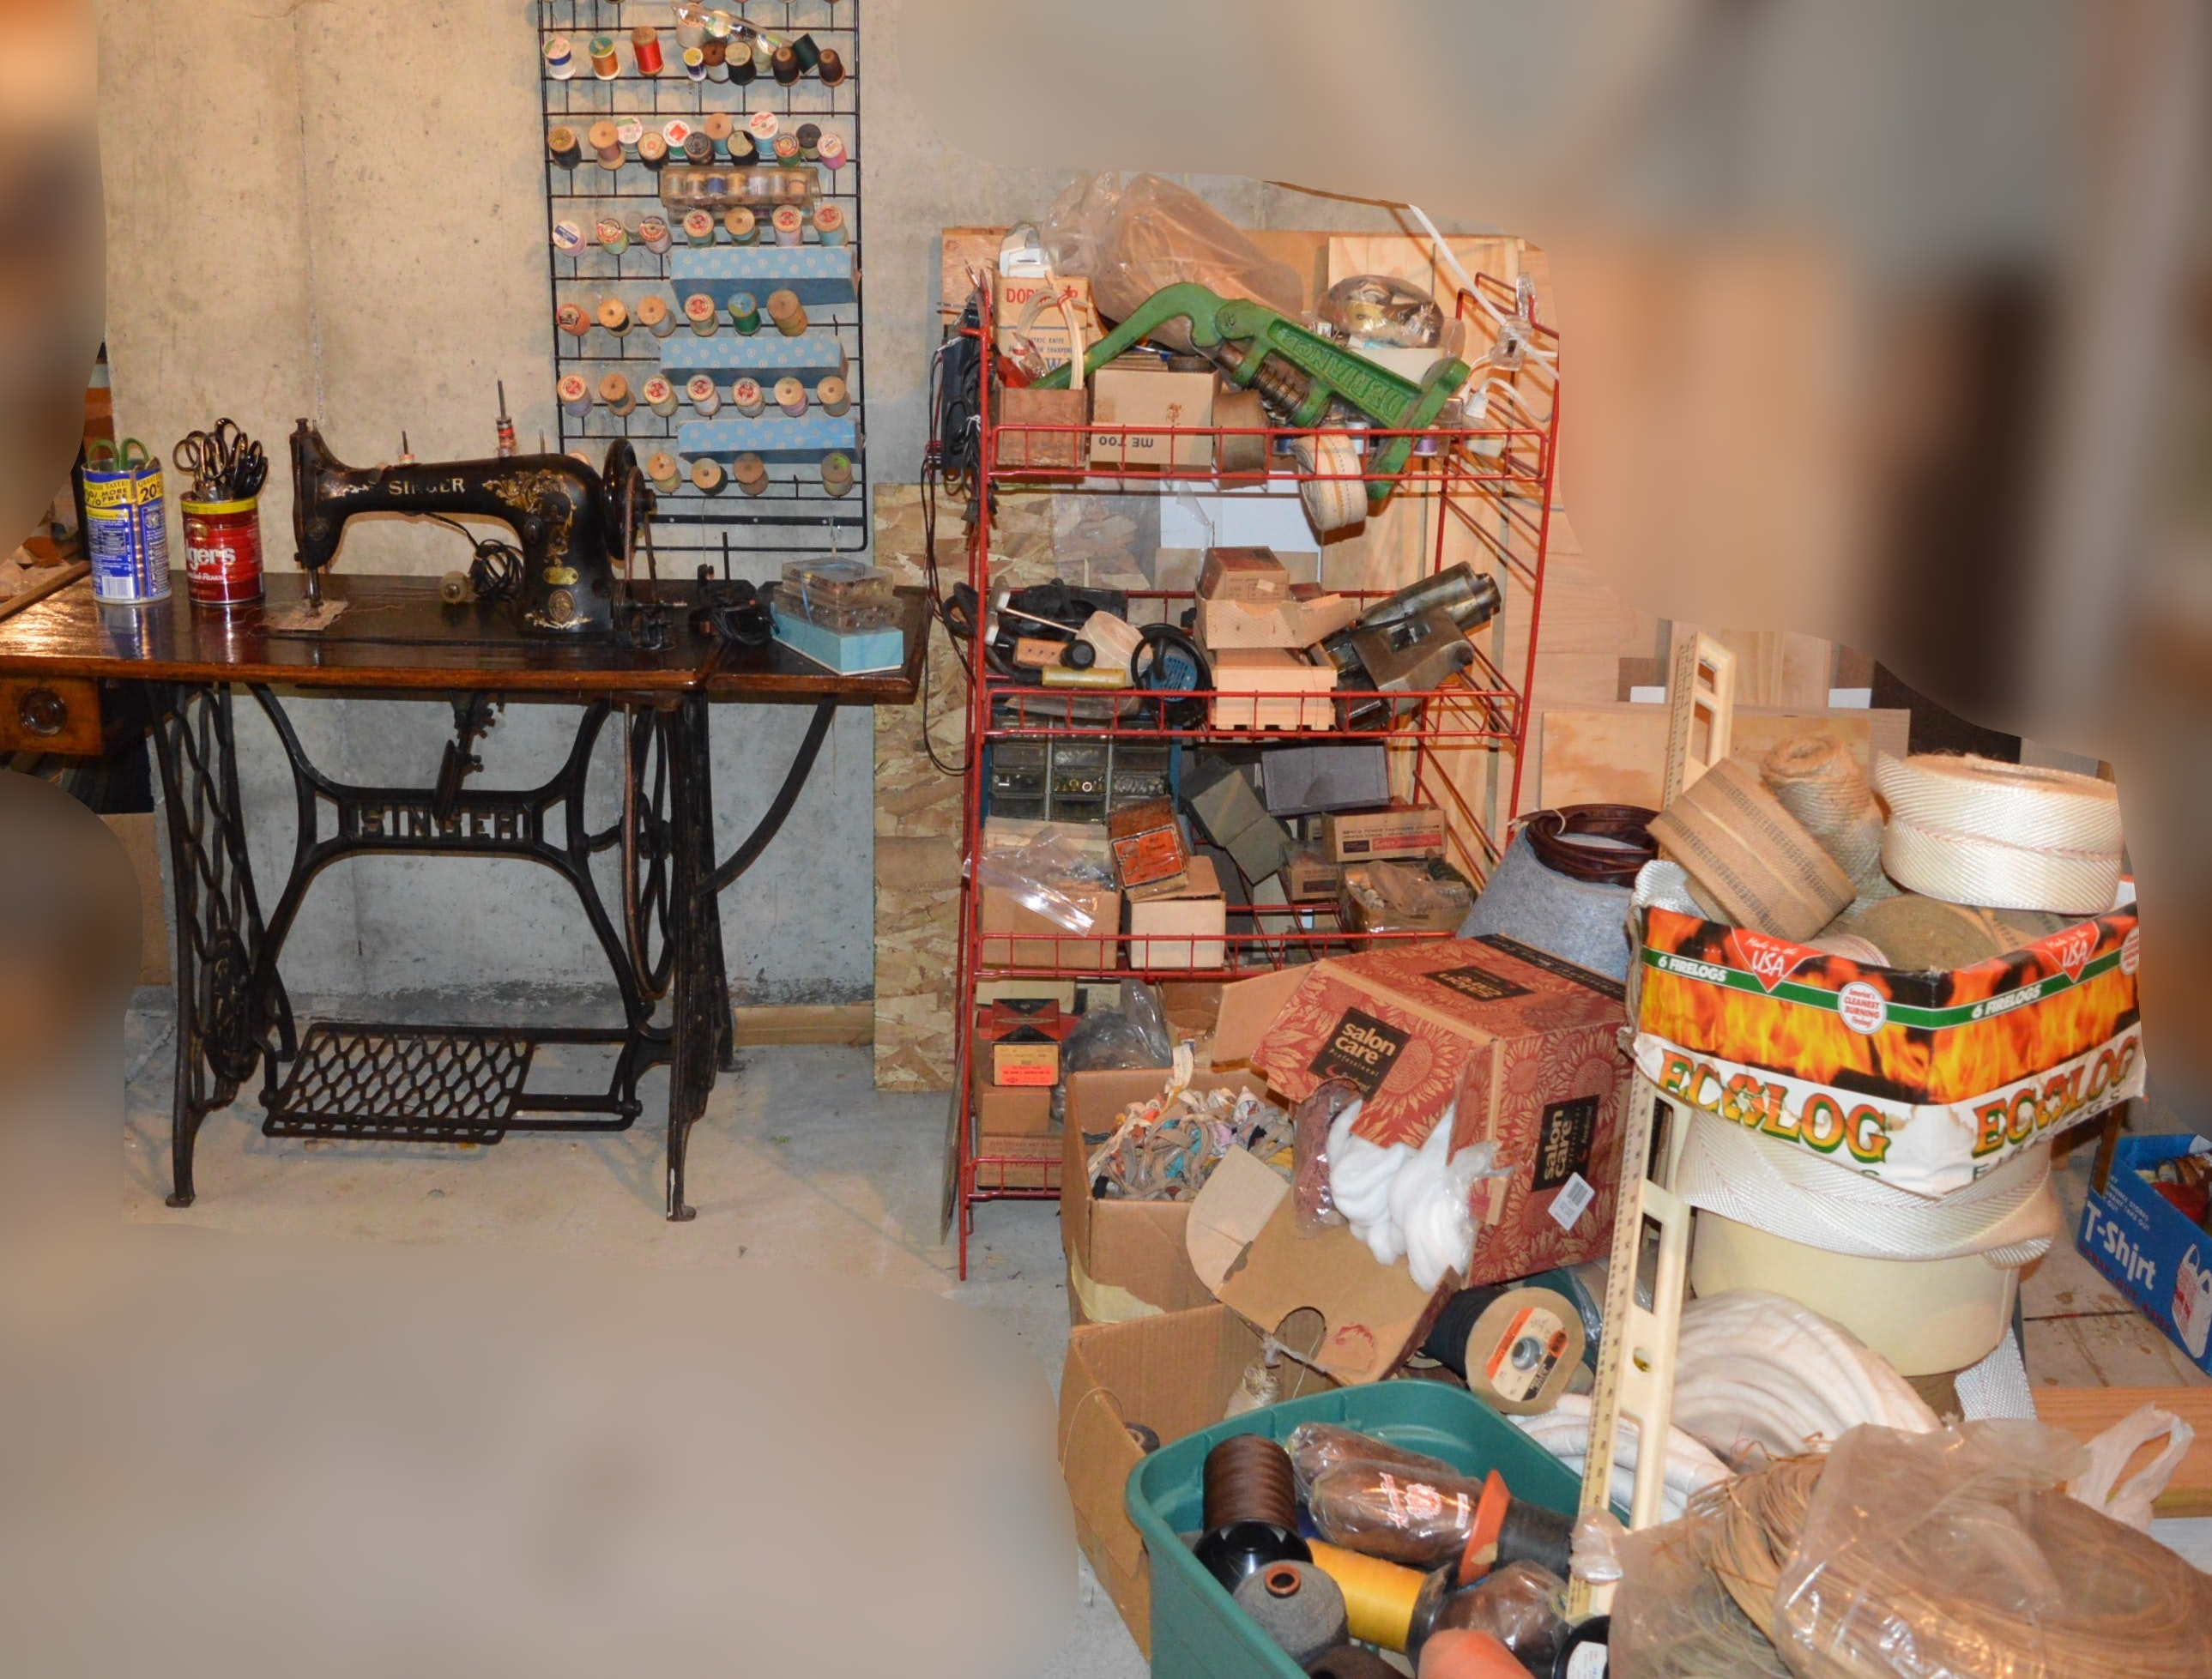 Antique Singer Upholstery Machine and Loads of Upholstery Items